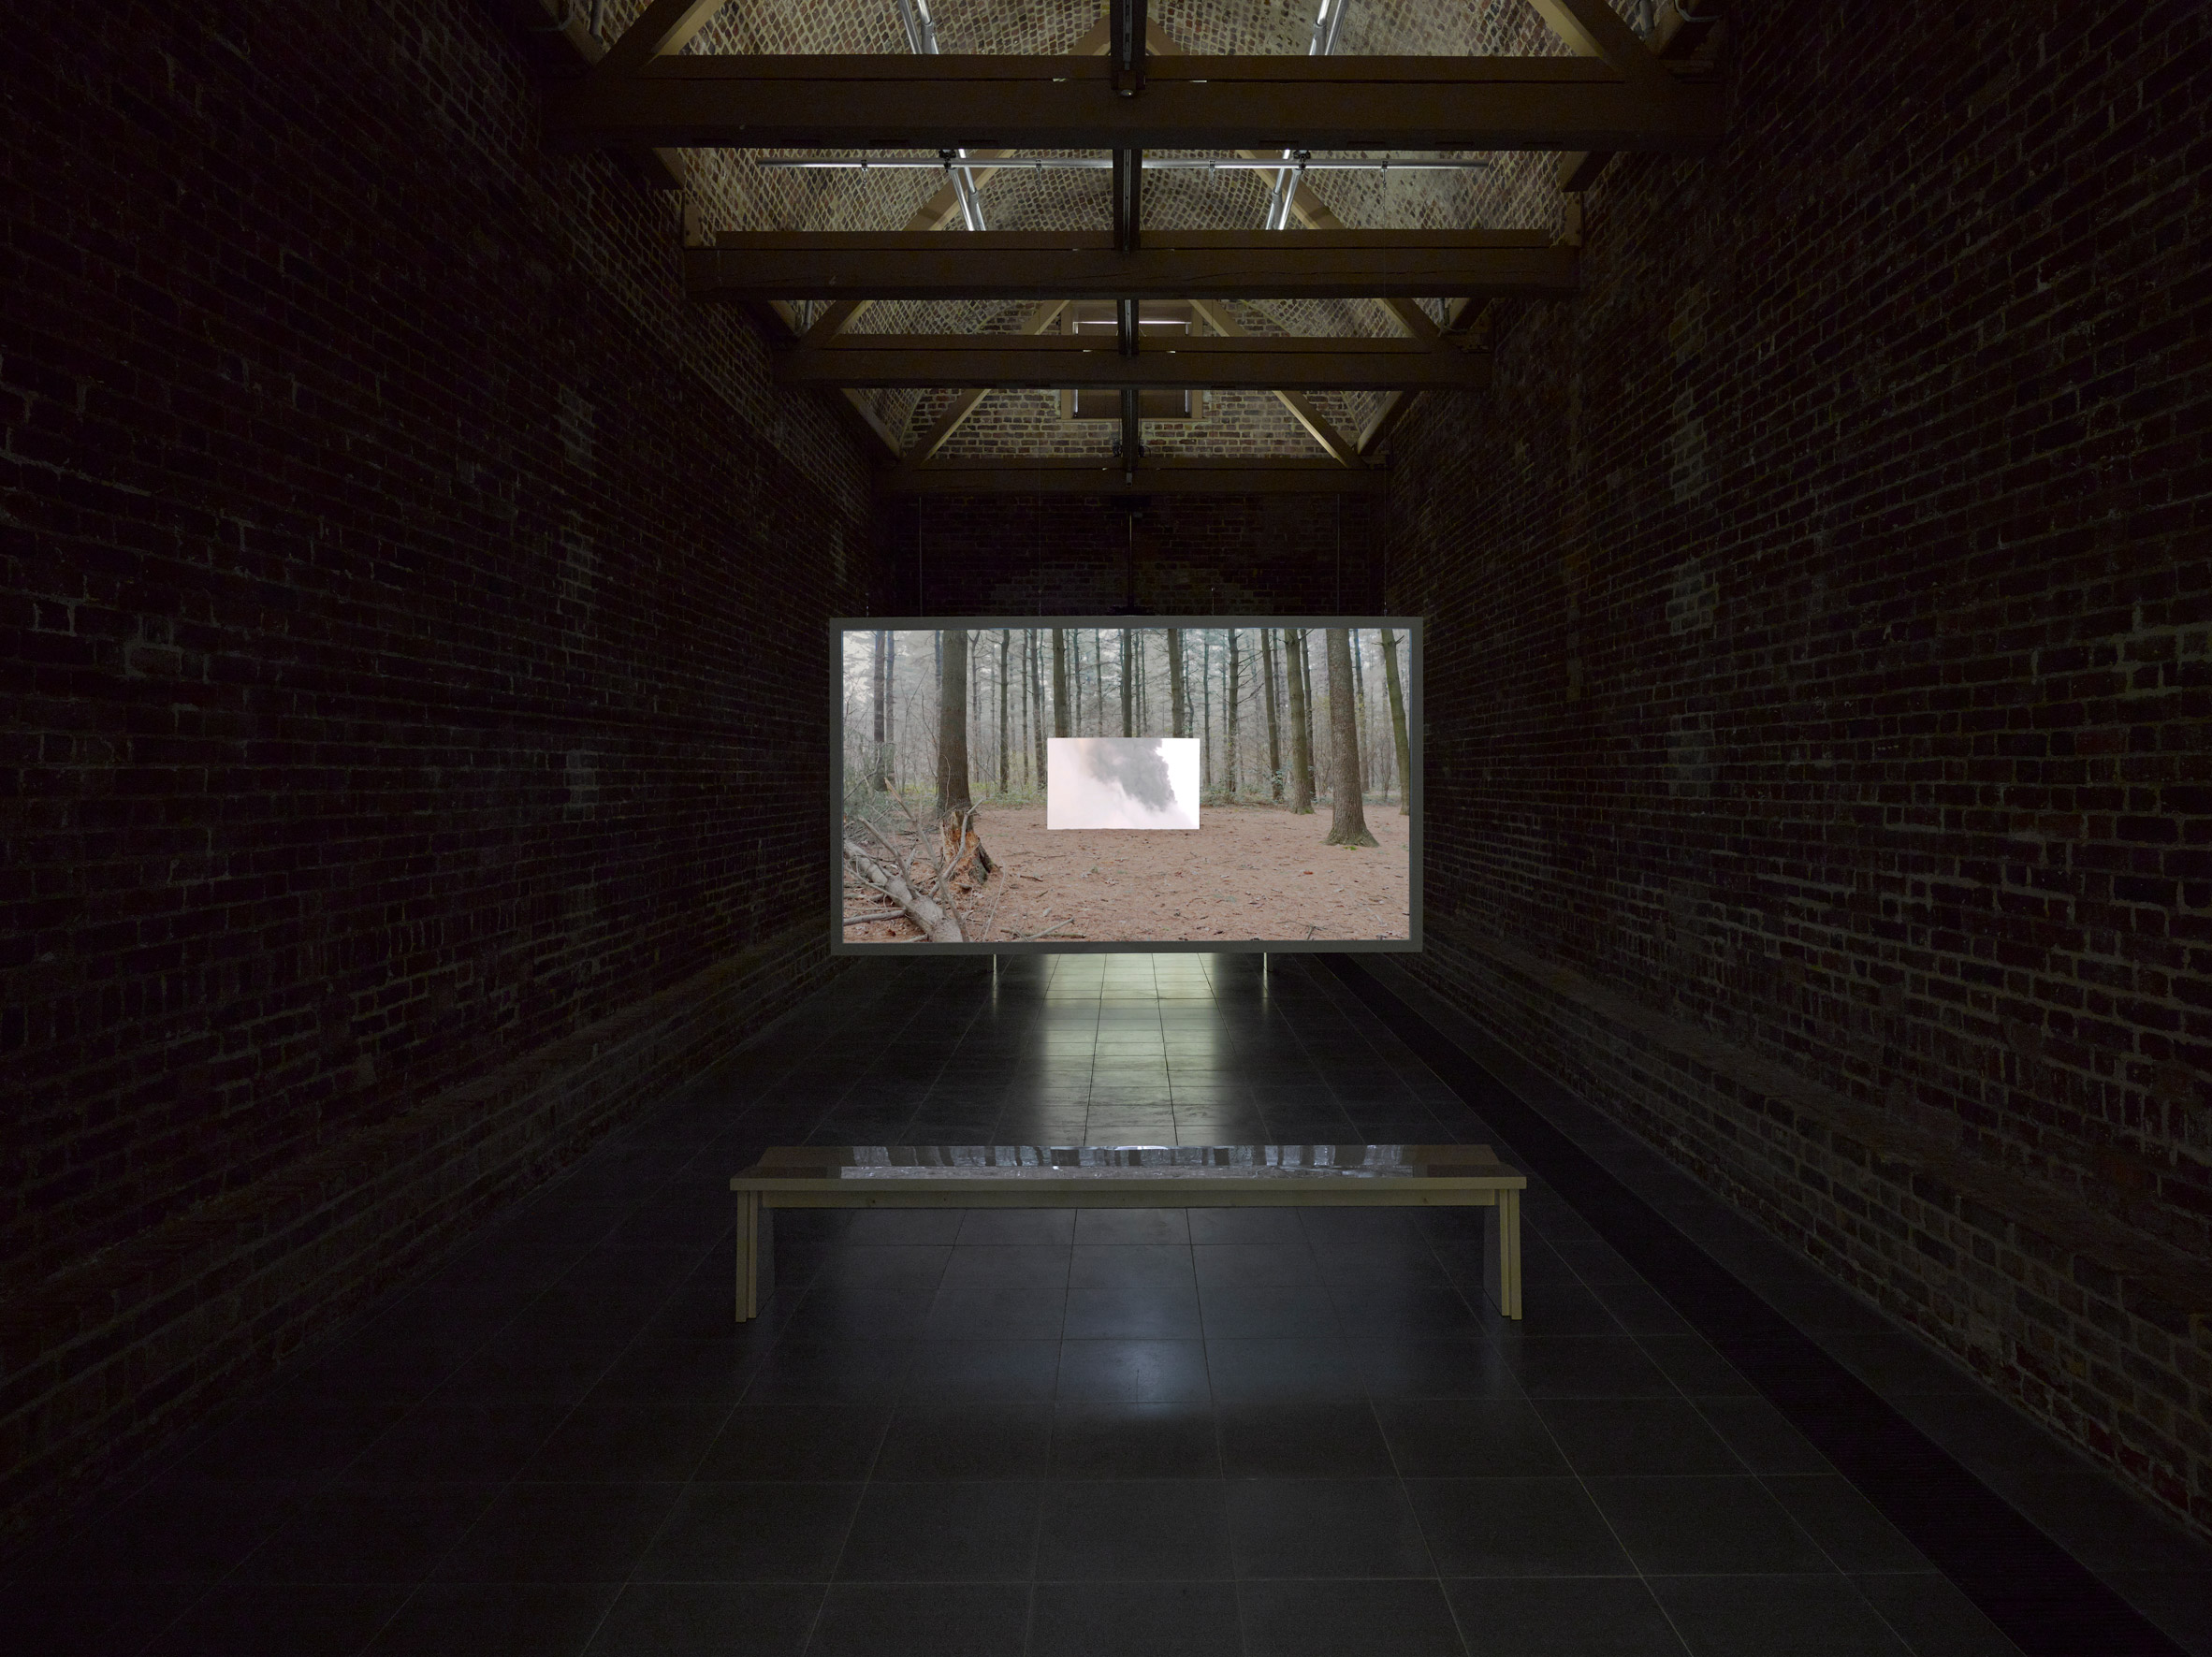 Cambio by Formafantasma at the Serpentine Sackler Gallery